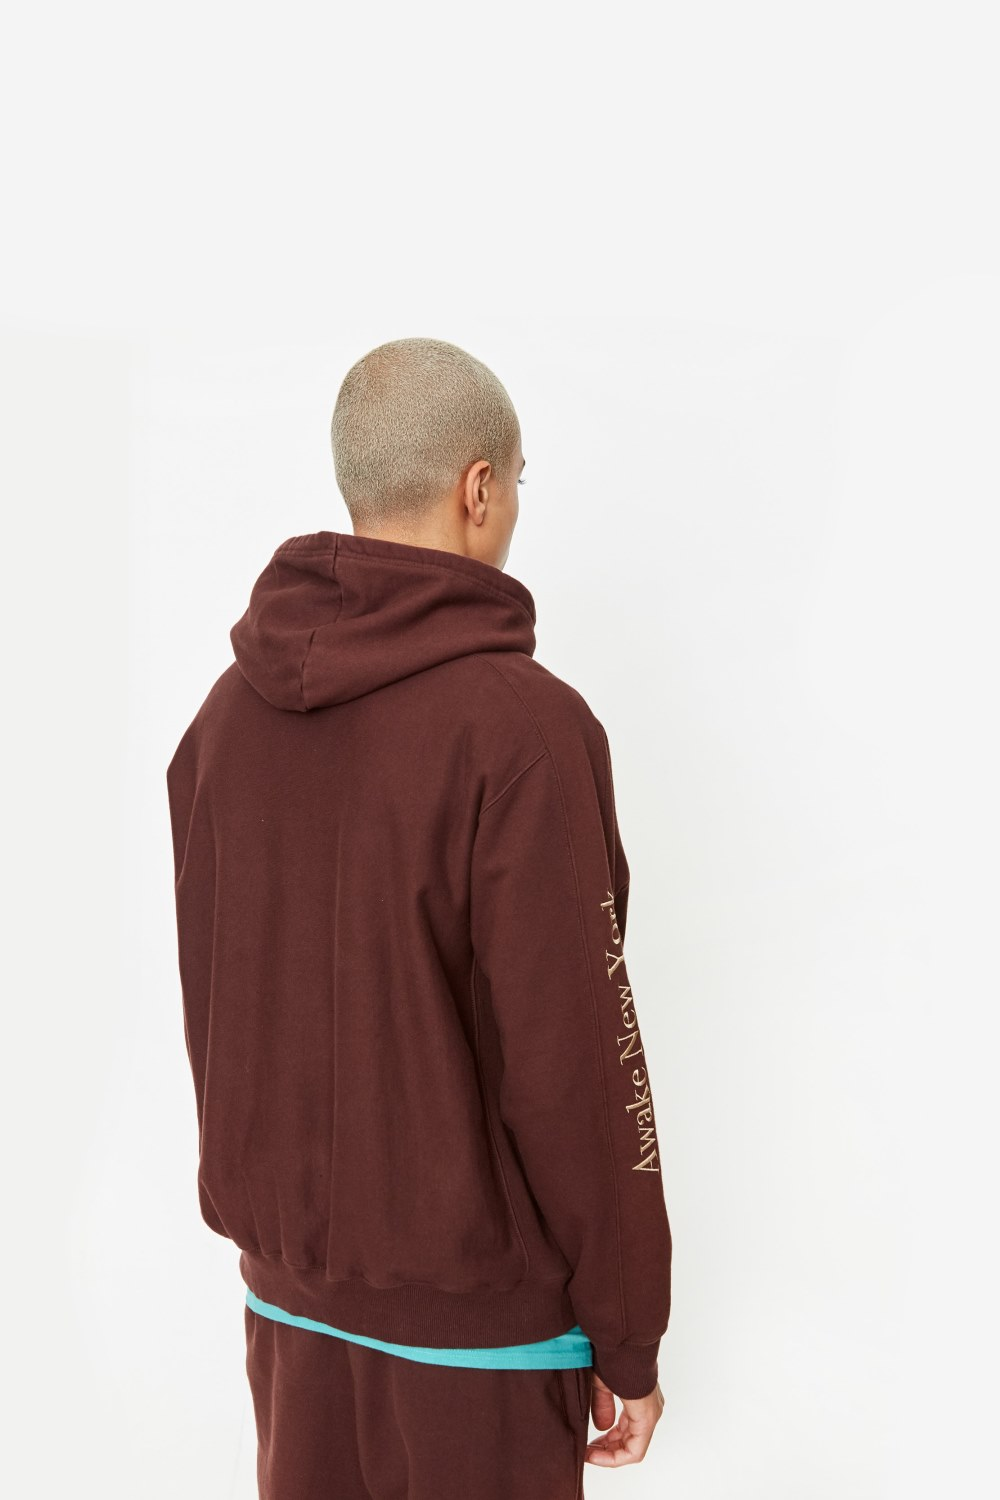 Awake Classic Outline Logo Paneled Embroidered Hoodie Brown 5